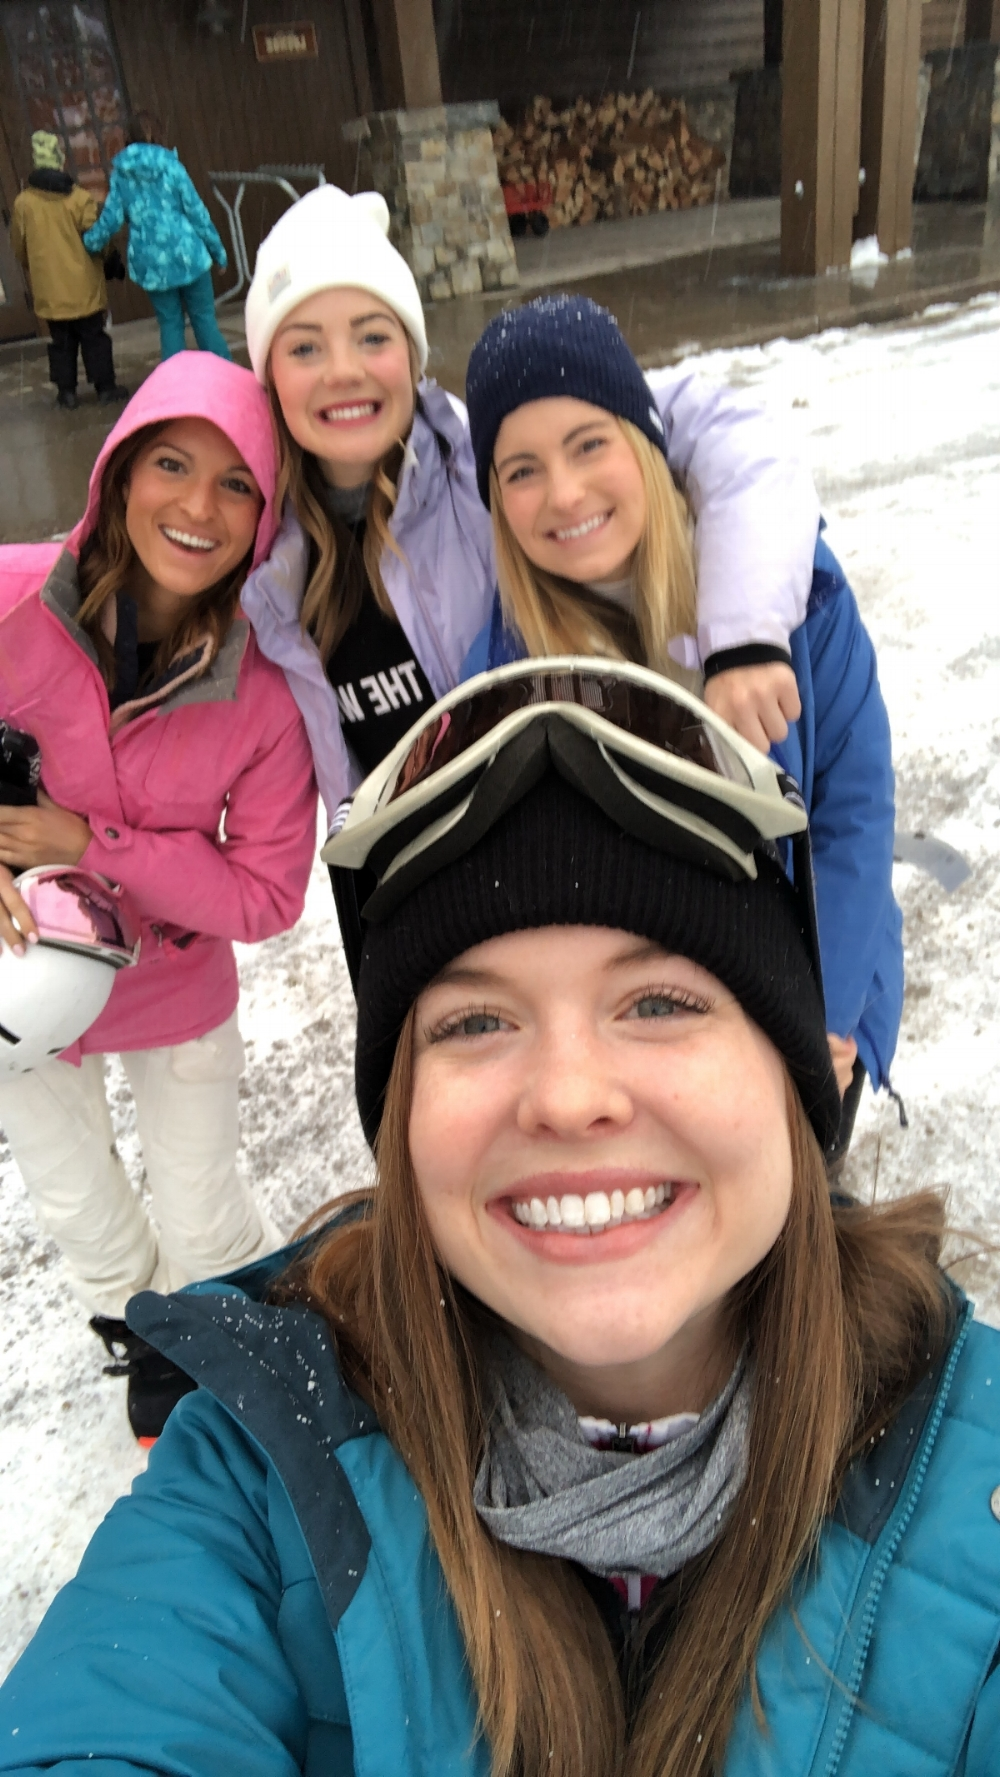 ski tips for beginners, ski whitefish, whitefish mountain resort, montana, what to expect for your first time skiing, lauren kay sims, kami blease